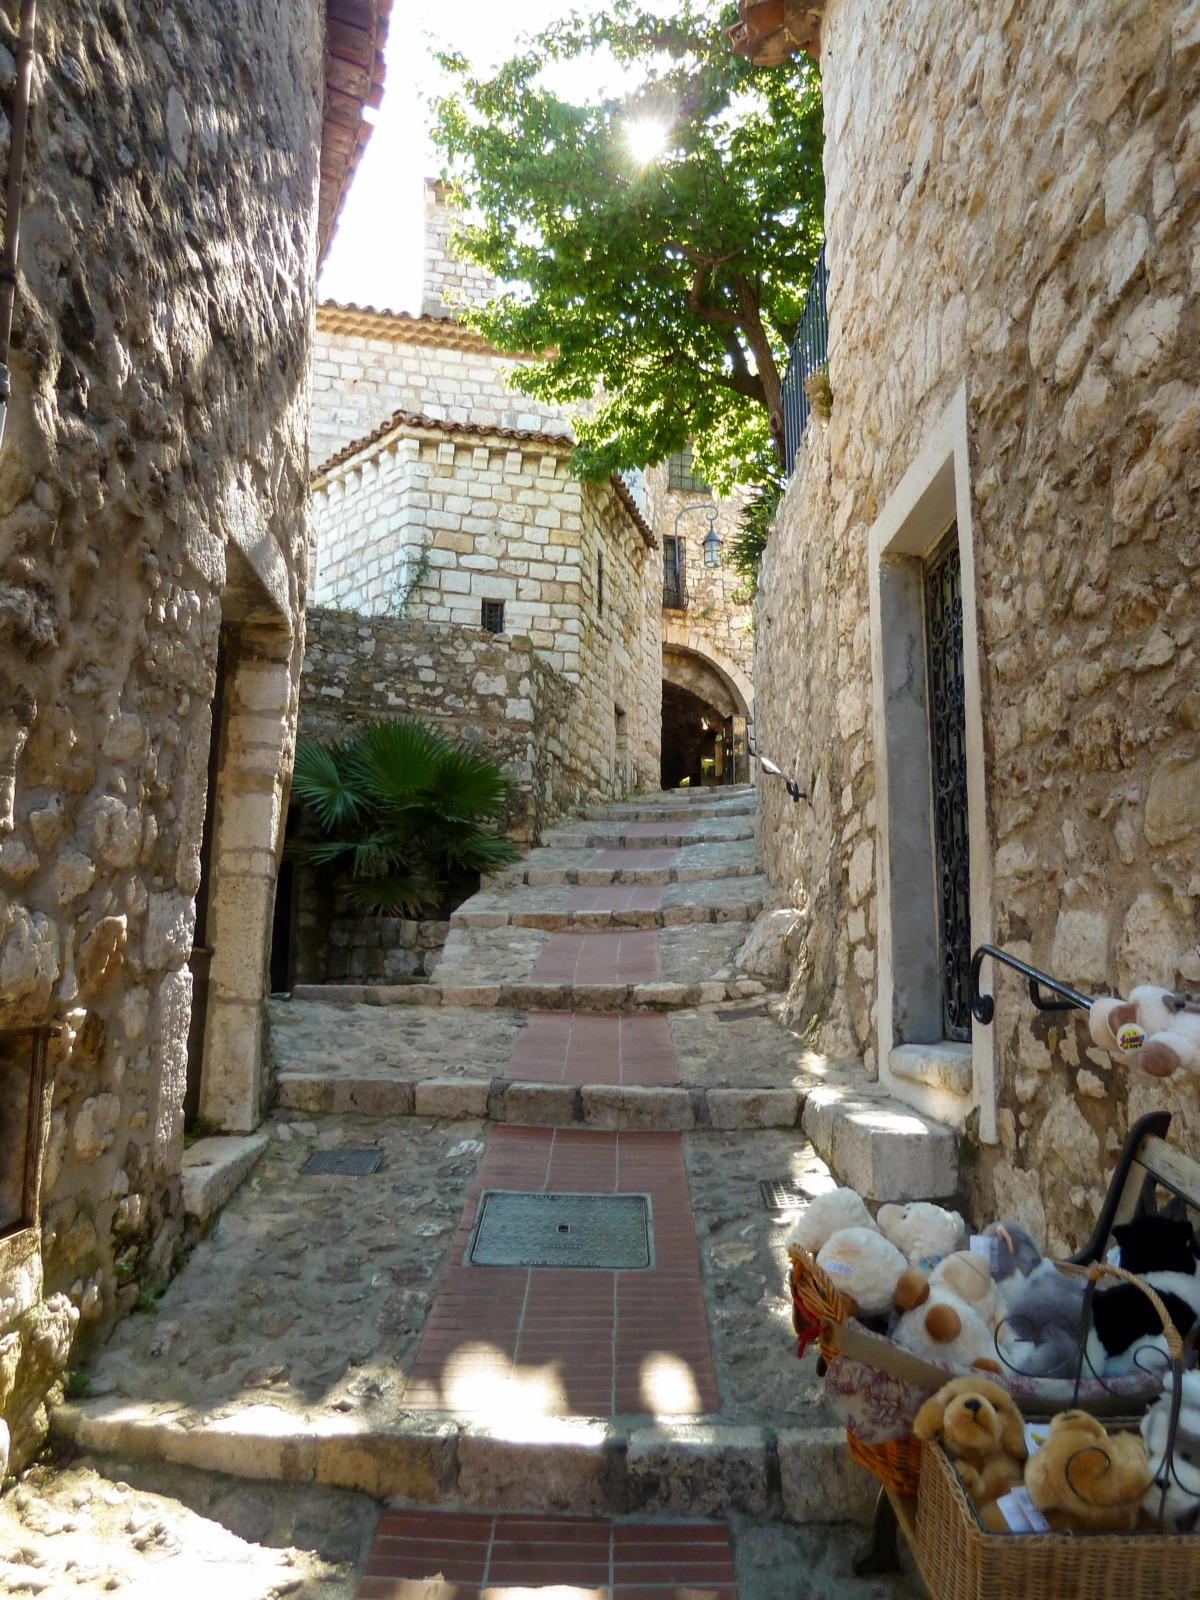 An old street in Eze © Abxbay - licence [CC BY-SA 3.0] from Wikimedia Commons